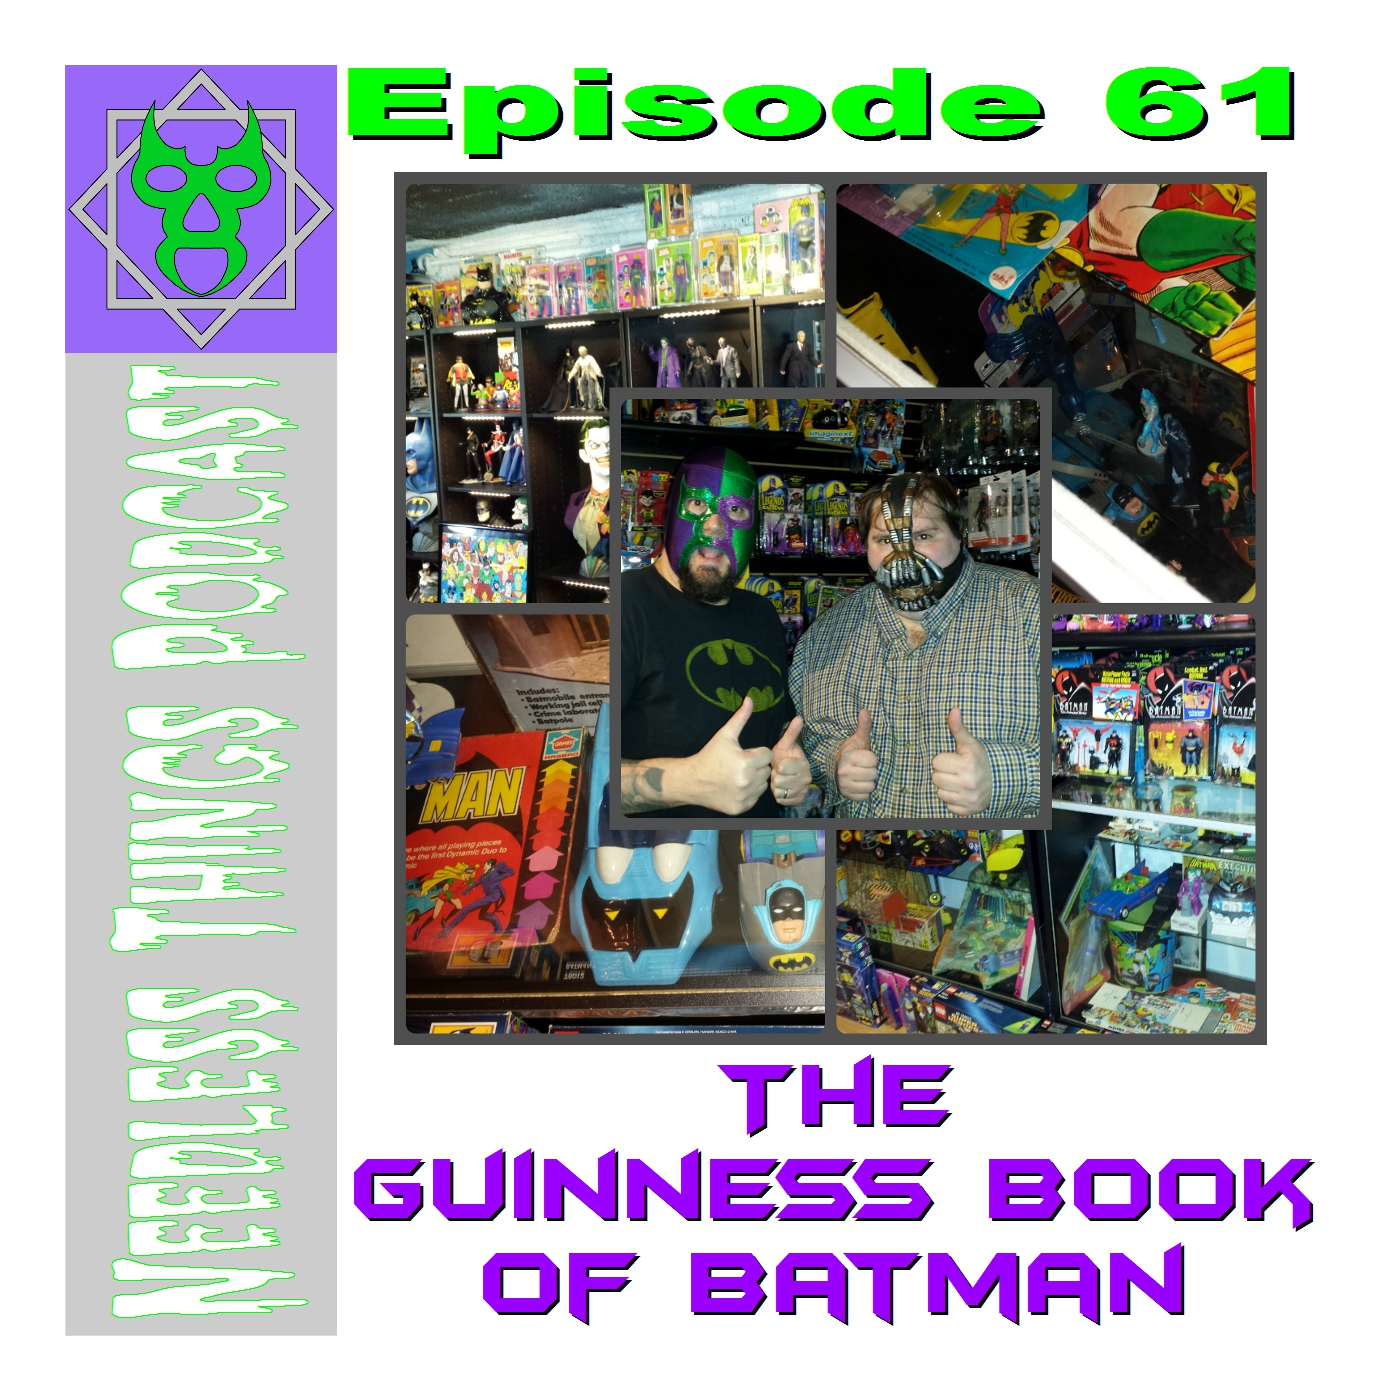 Forum on this topic: How to Get Into the Guinness Book , how-to-get-into-the-guinness-book/